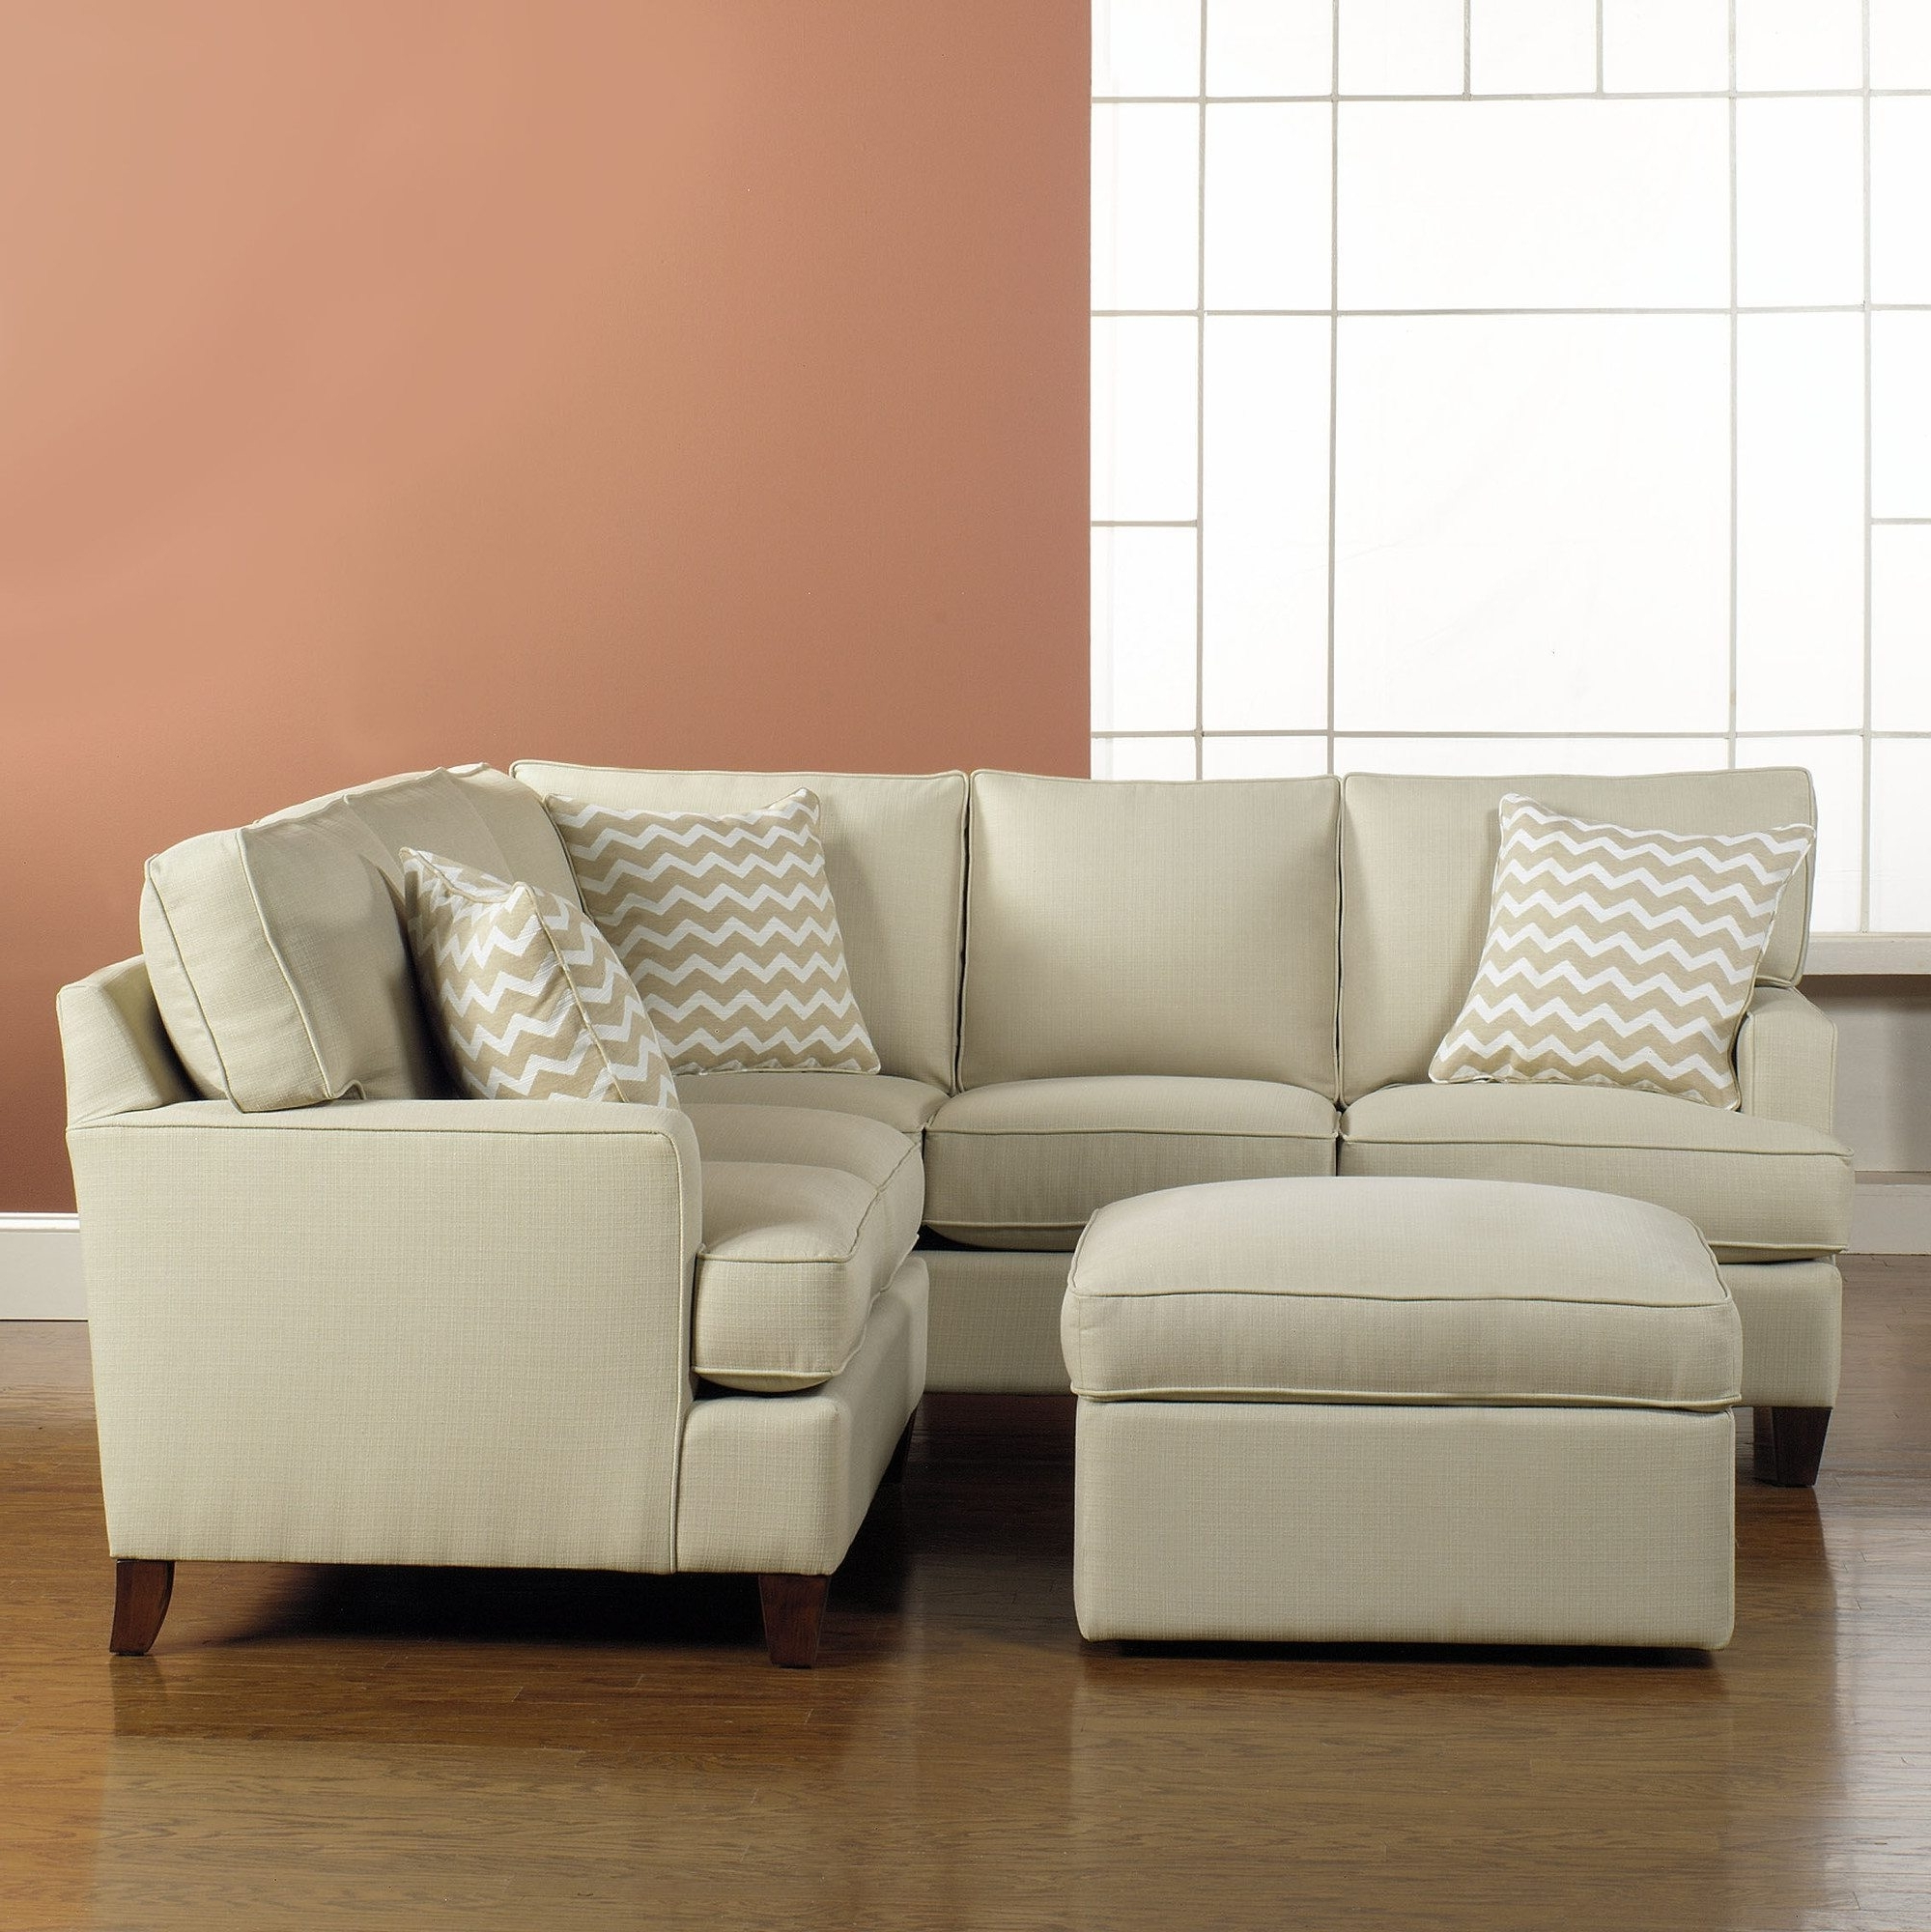 Sofa : Small 2 Piece Sectional Sofa Comfy Sectionals For Small Throughout Popular Comfy Sectional Sofas (View 10 of 20)